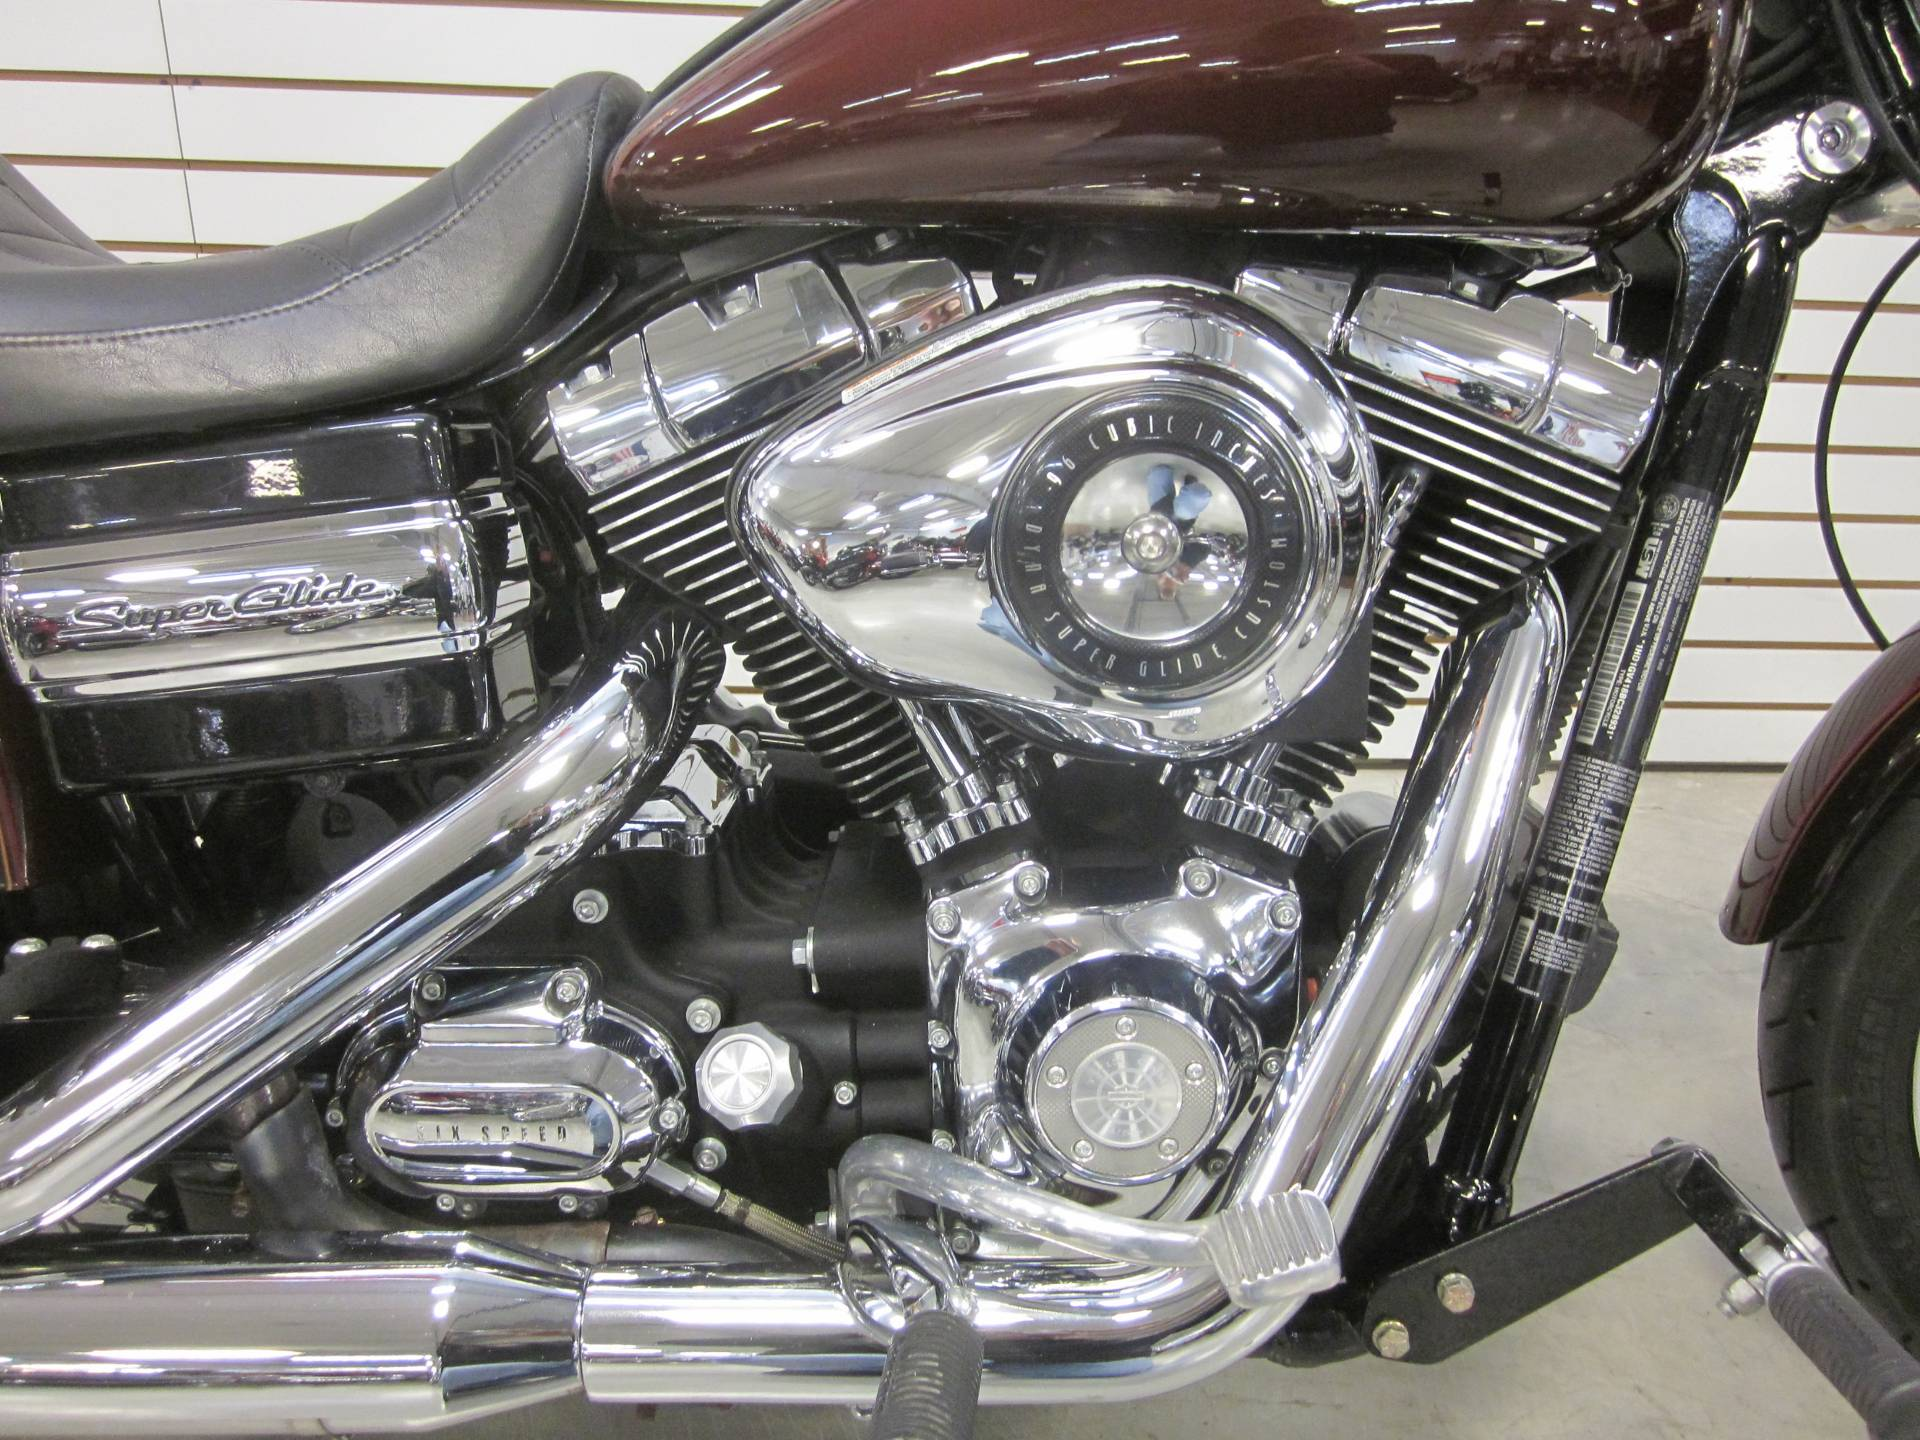 2011 Harley Davidson Super Glide in Lima, Ohio - Photo 10